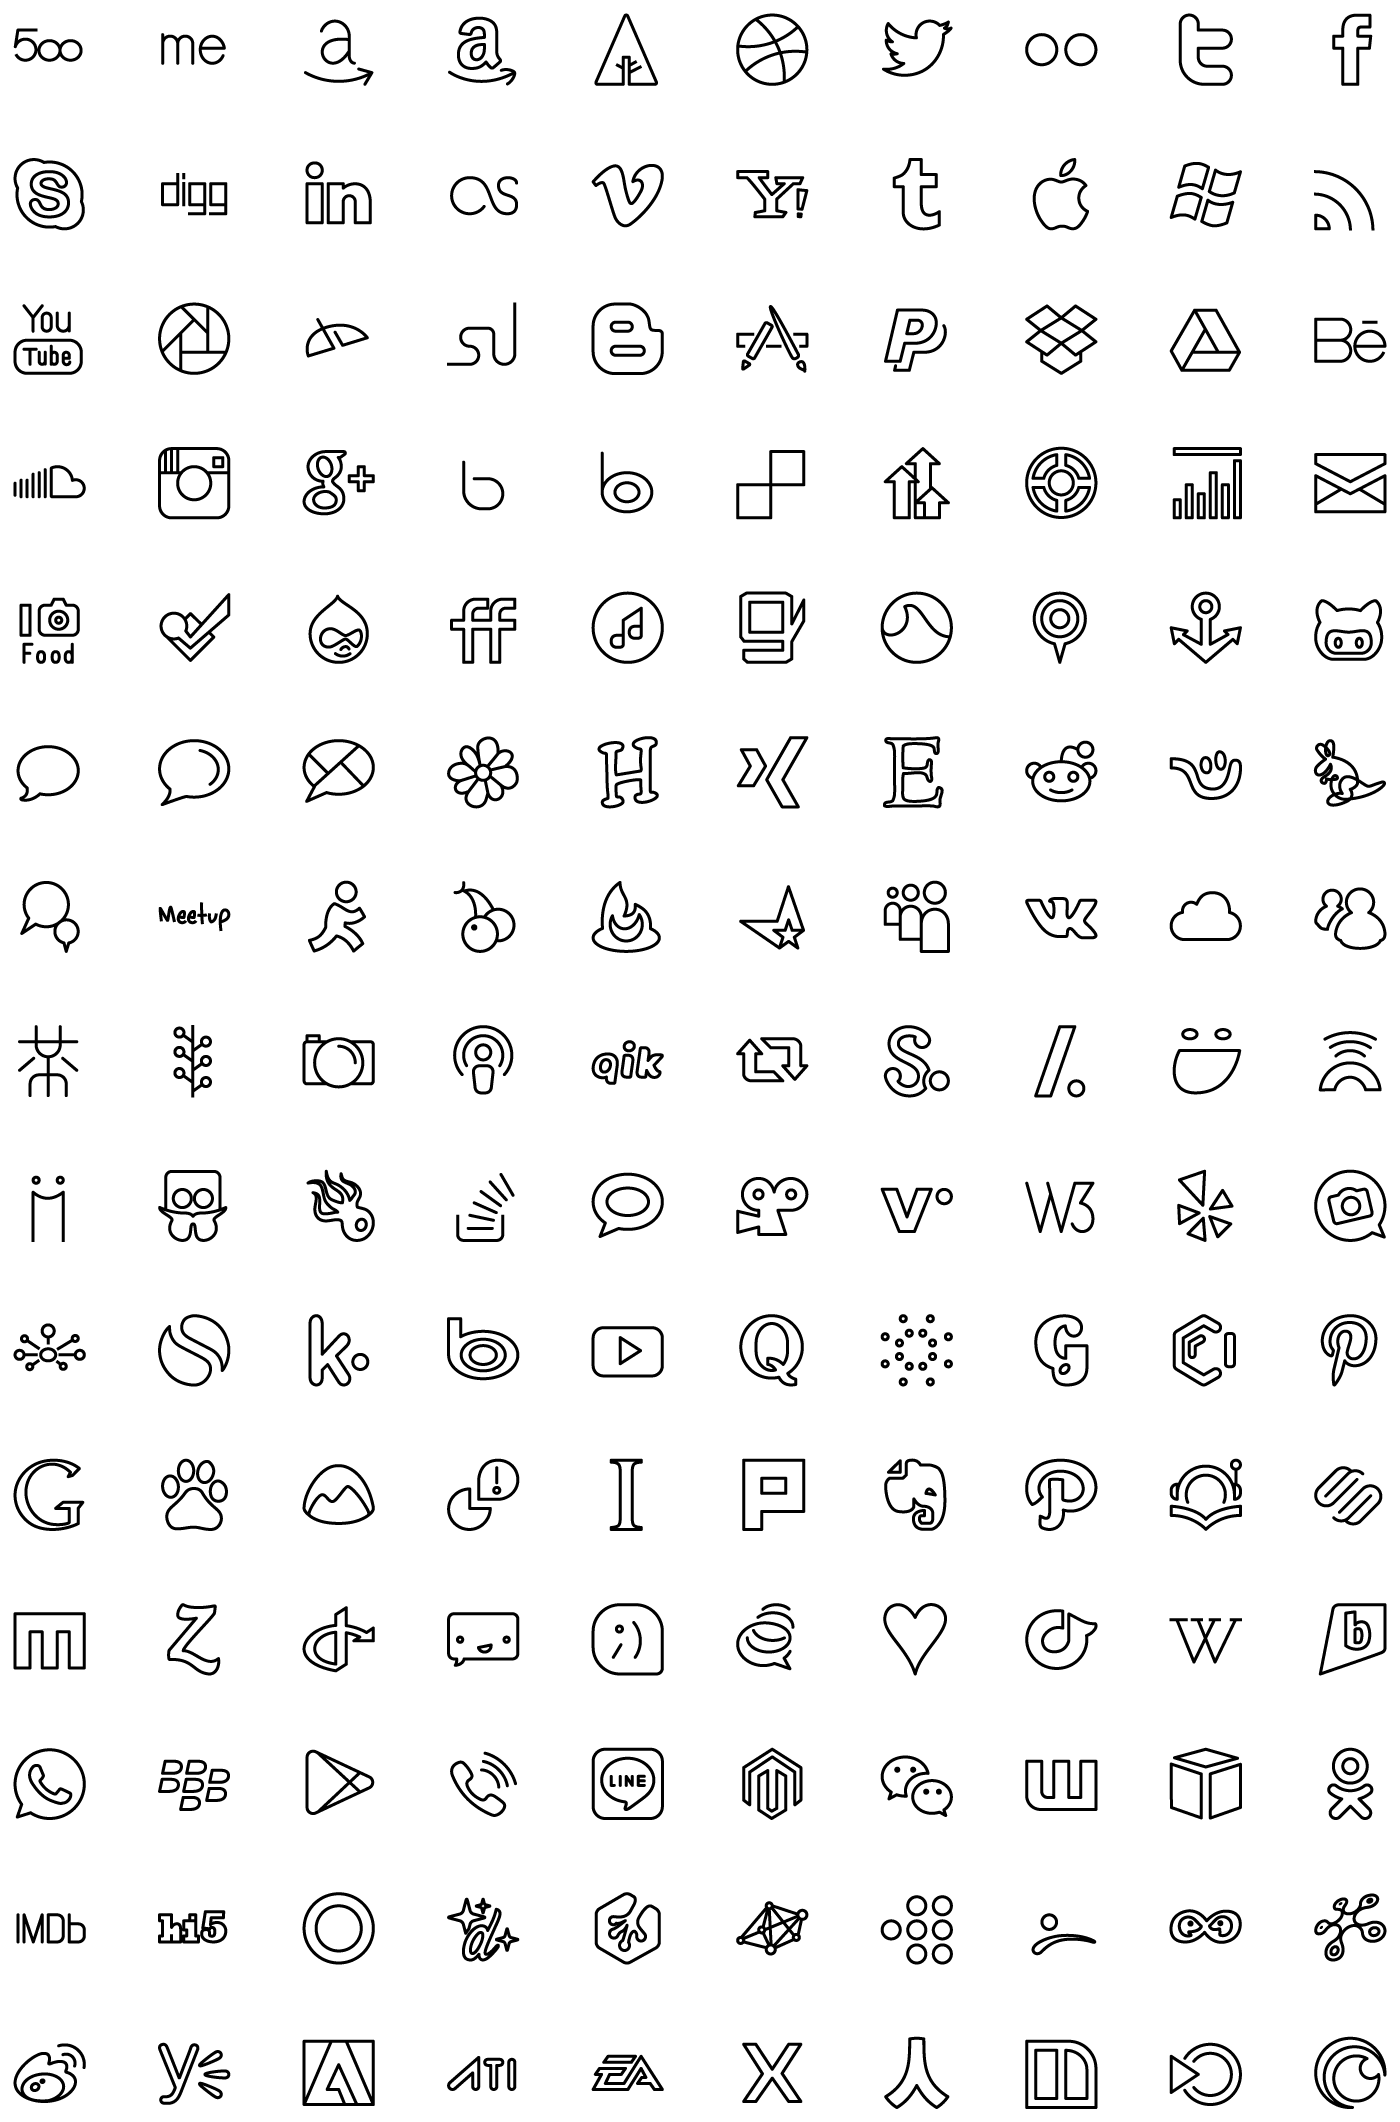 Streamline Ultimate Pack 4000 Vector Icons for iOS